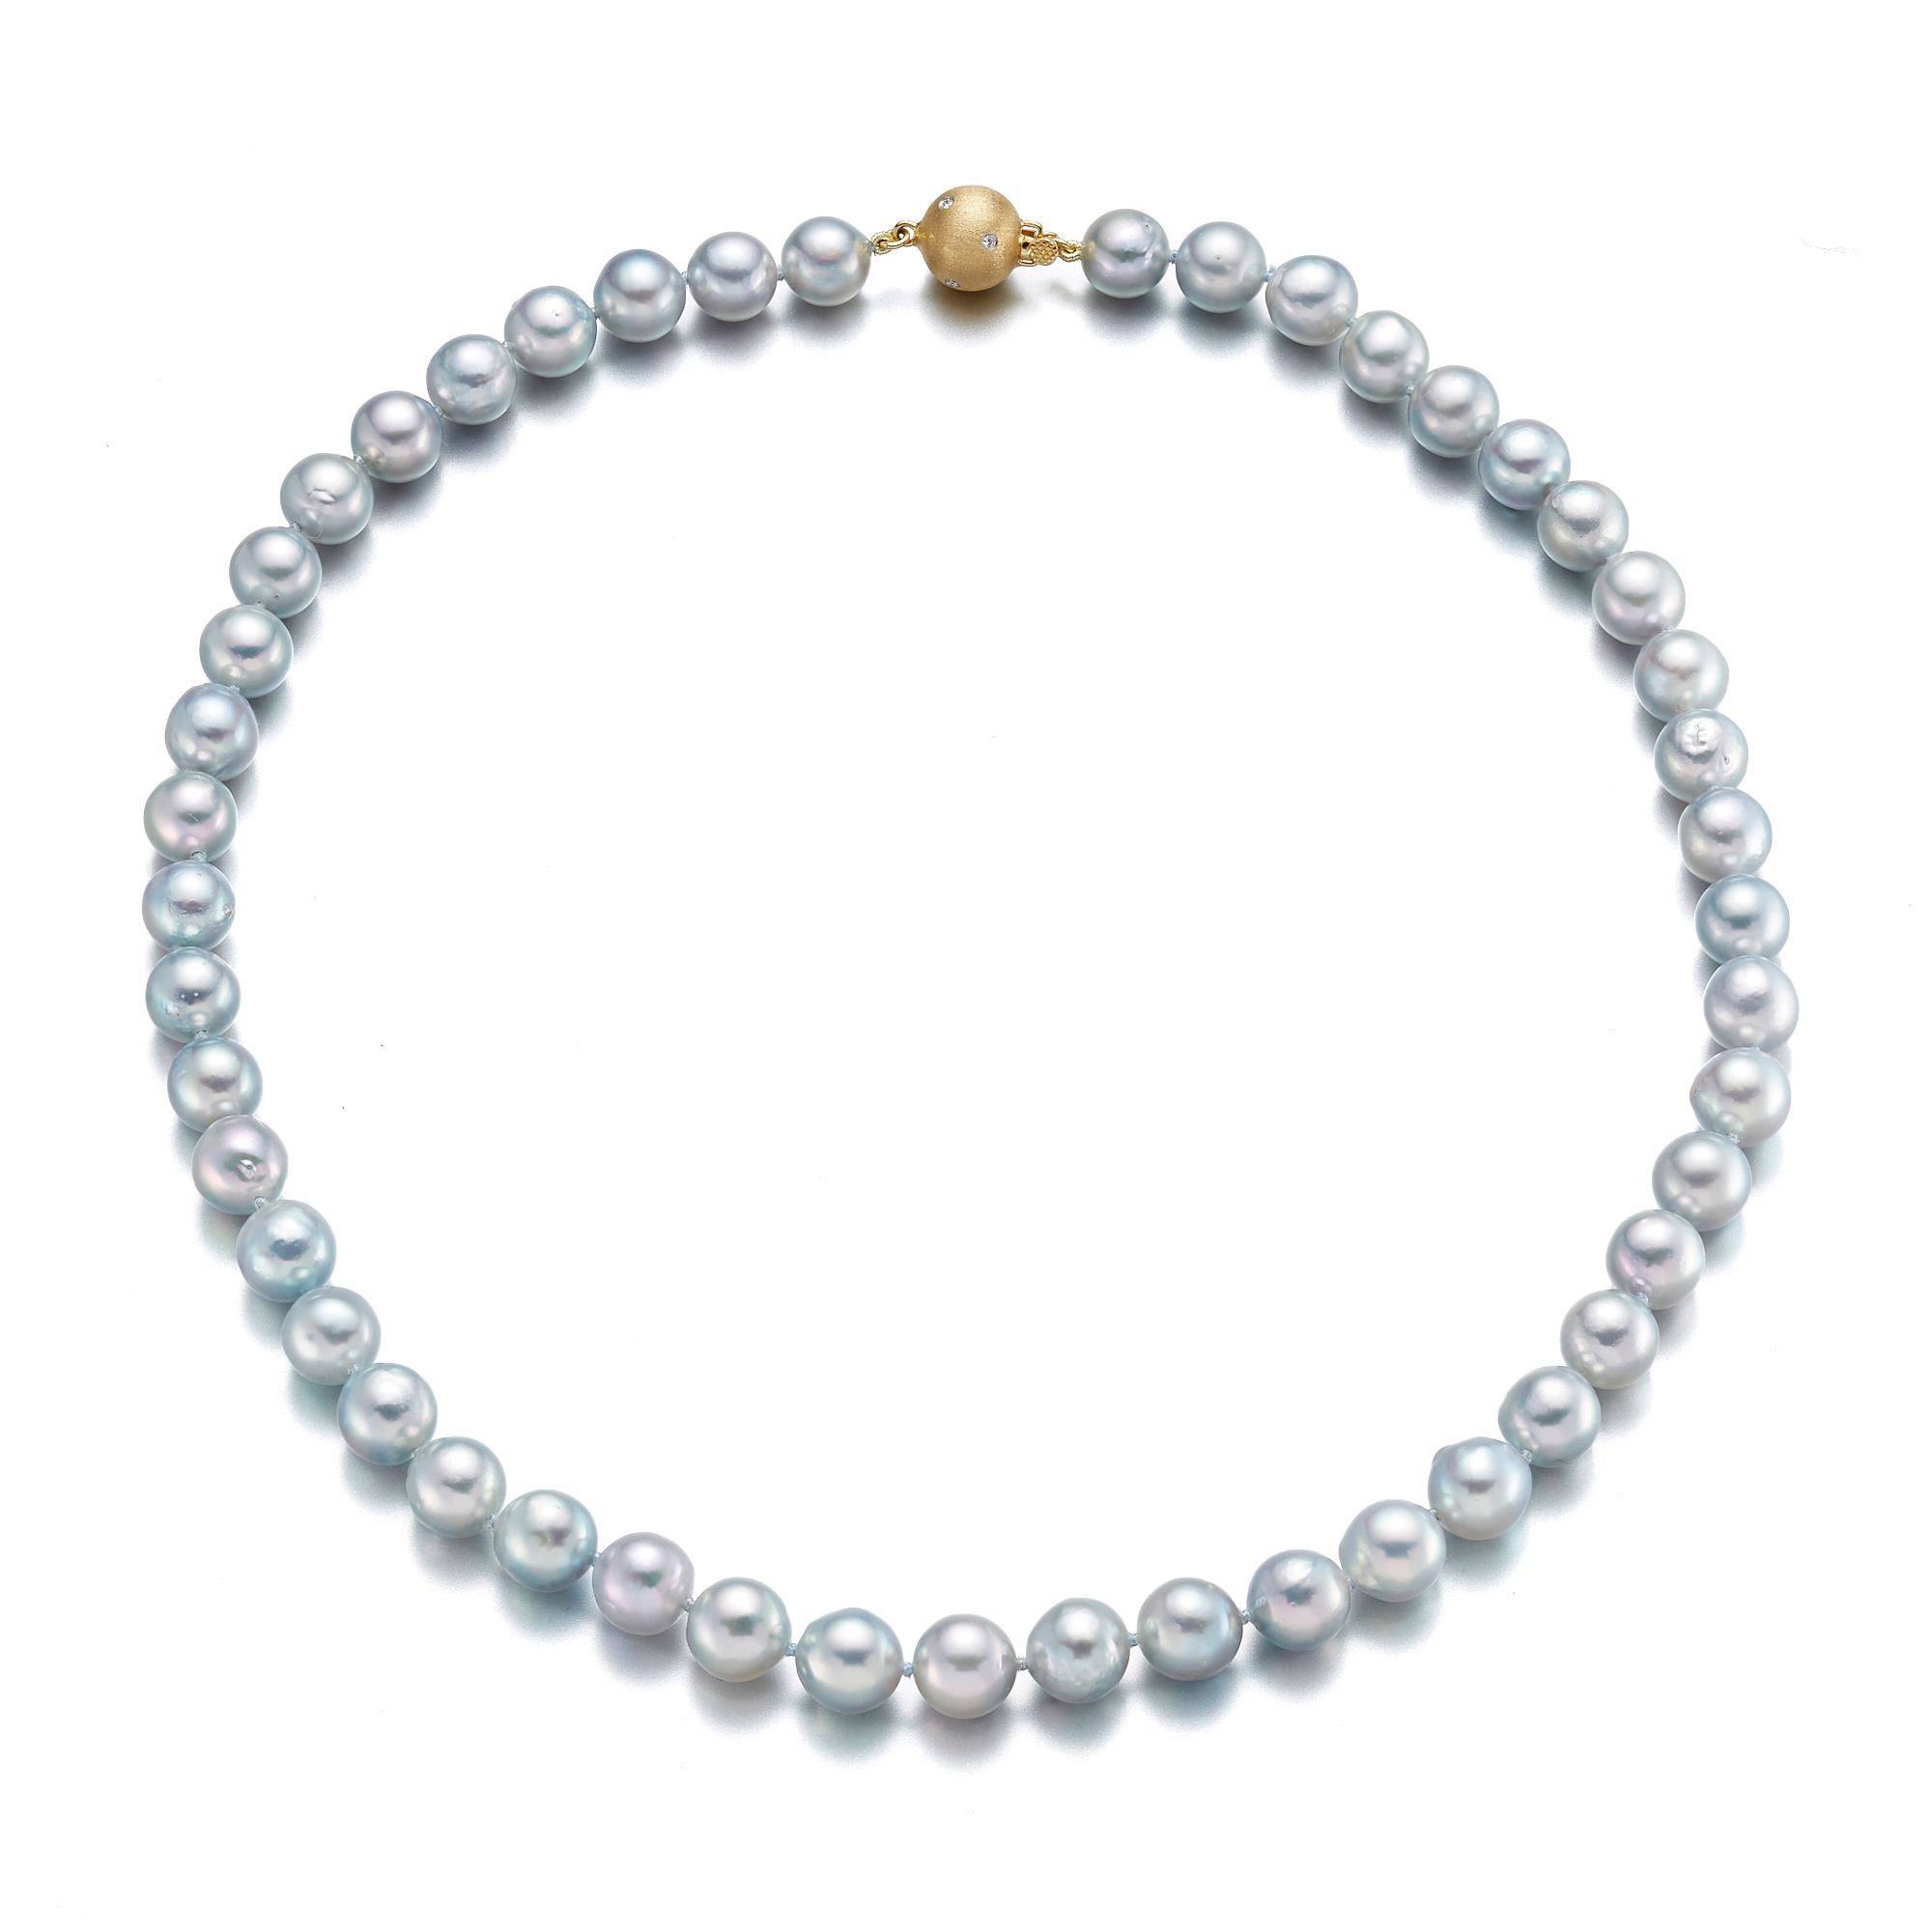 Gump's Blue Akoya Pearl Necklaces